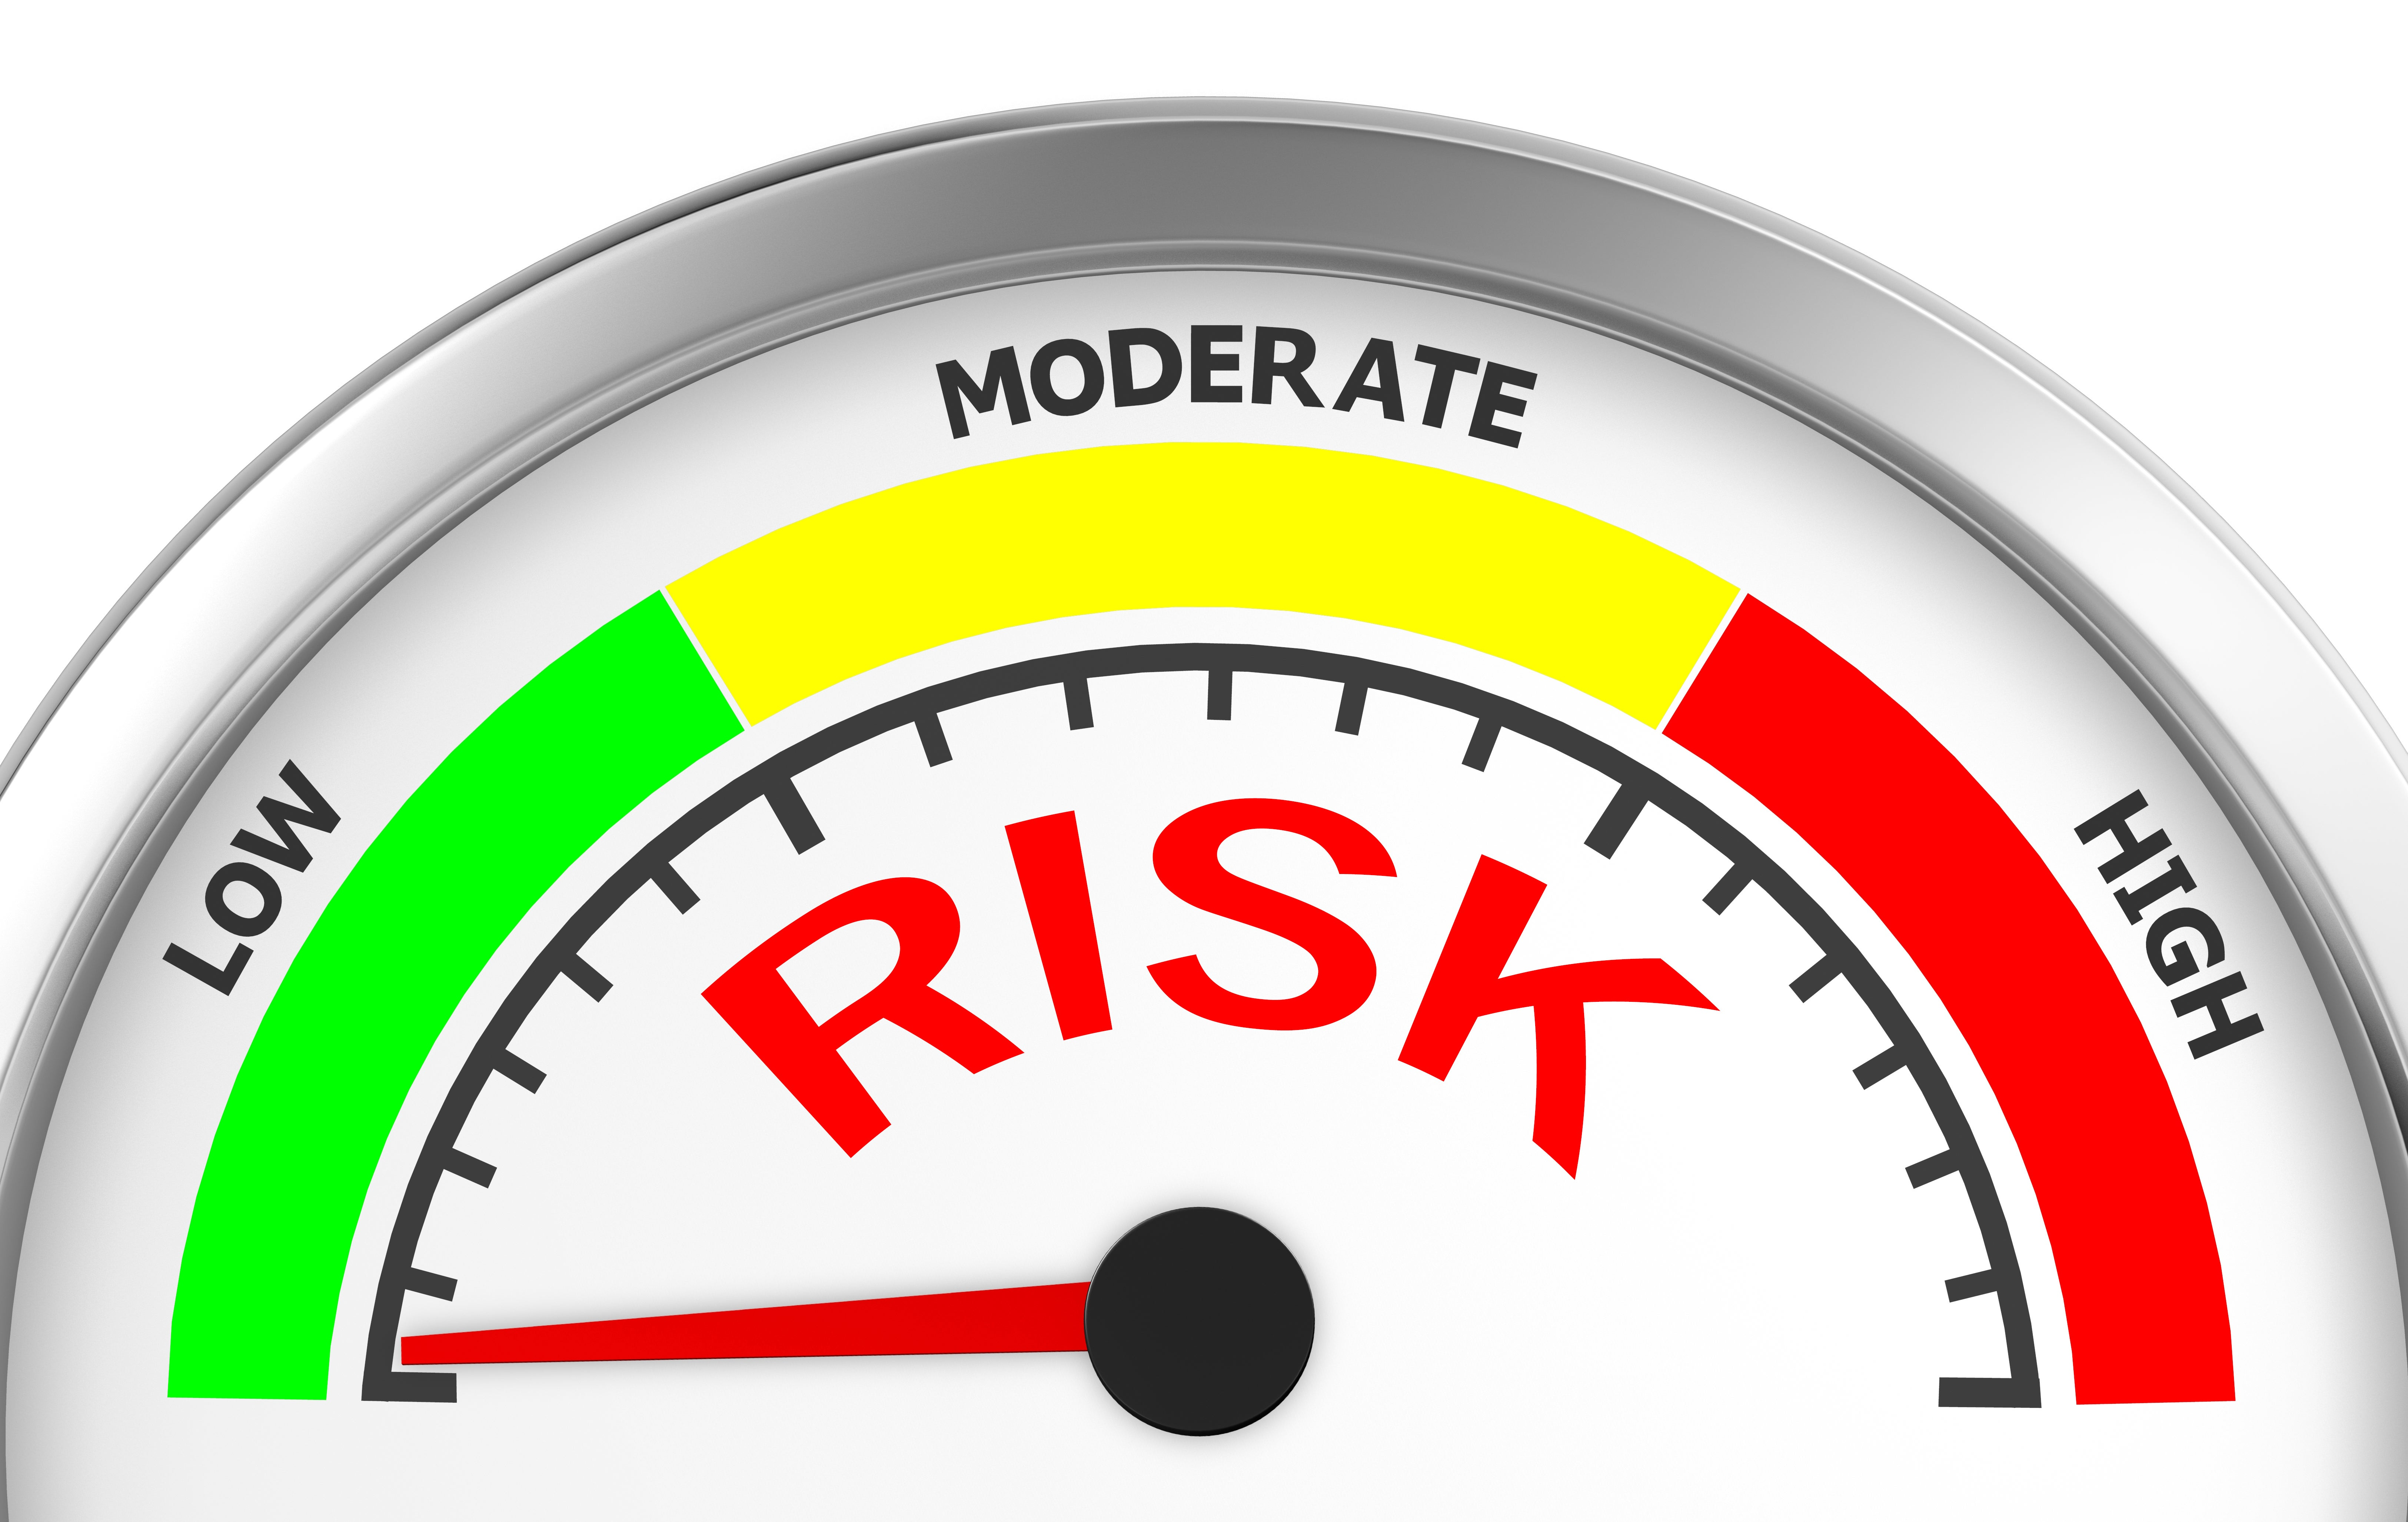 how to find a stock u0026 39 s risk rating